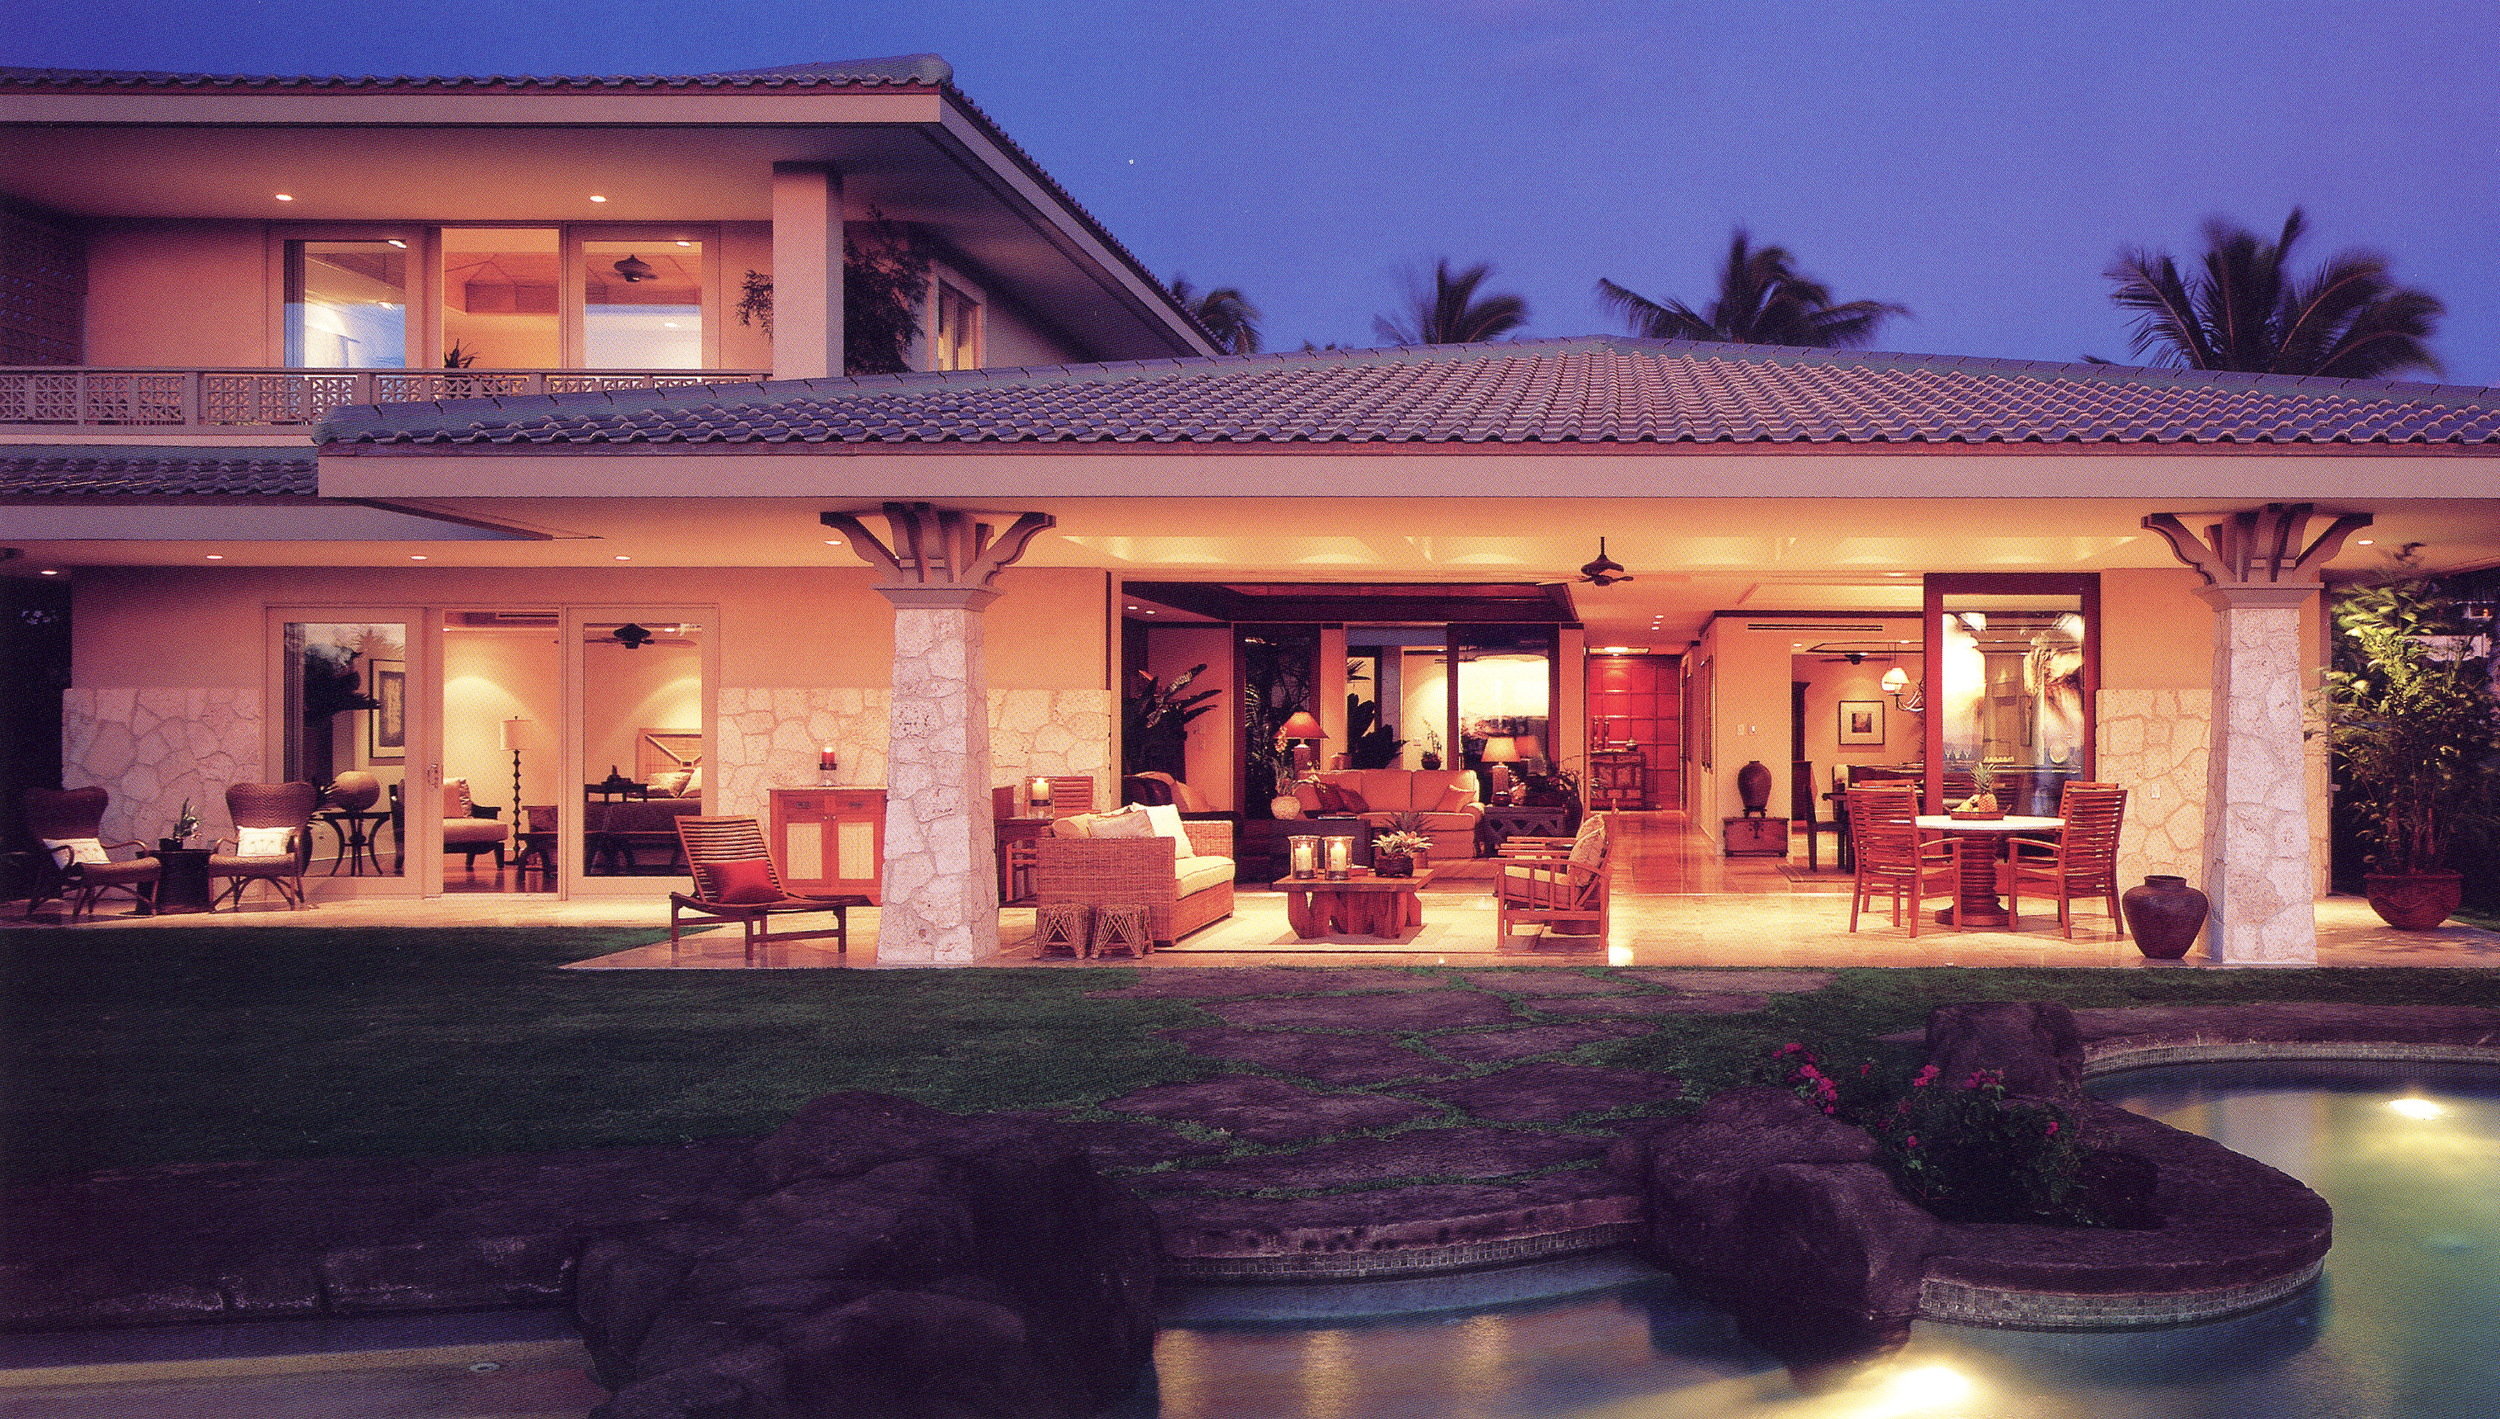 MAUI BUILDERS - LUXURY HOME BUILDER SINCE 1984